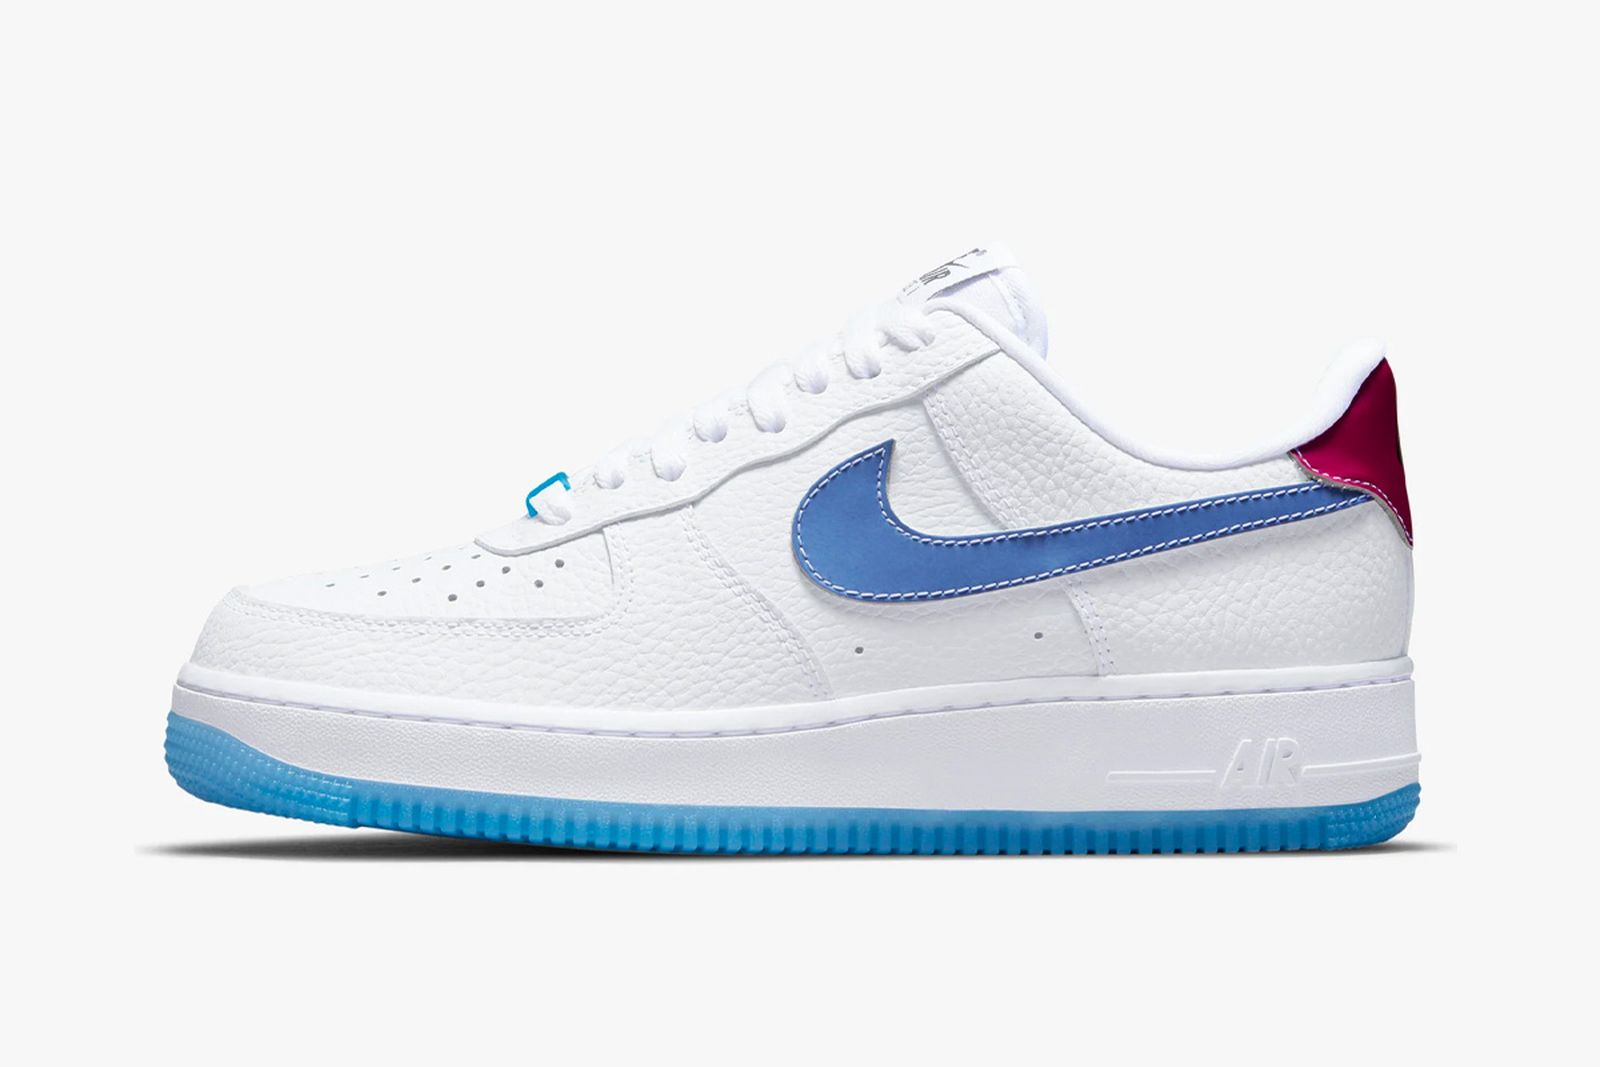 nike-air-force-1-air-force-1-07-lx-release-date-info-price-06